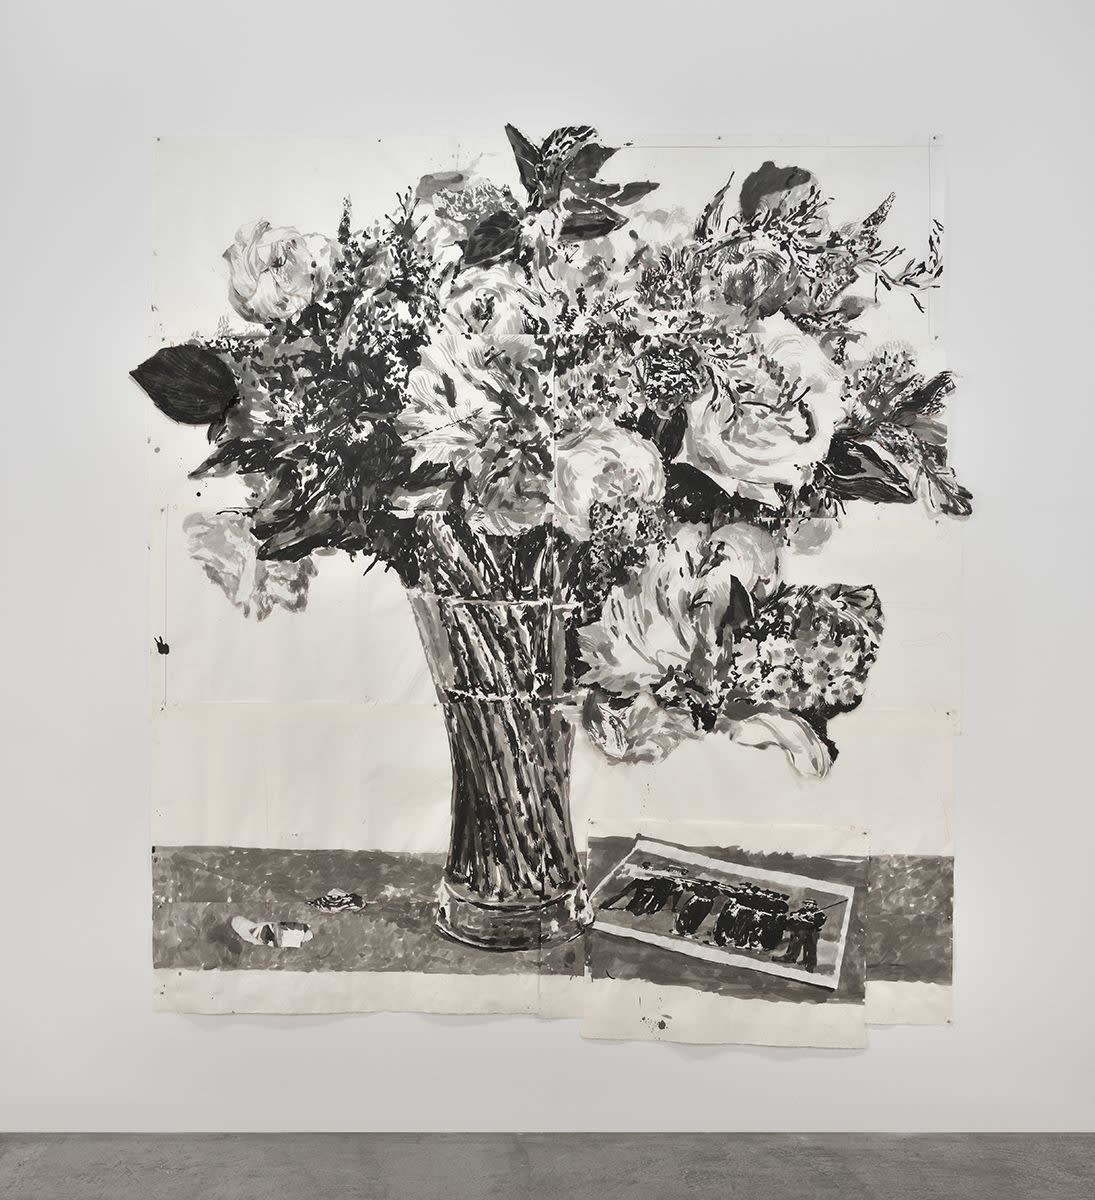 a drawing of flowers in a vase by William Kentridge called The Execution of Maximilian from 2017